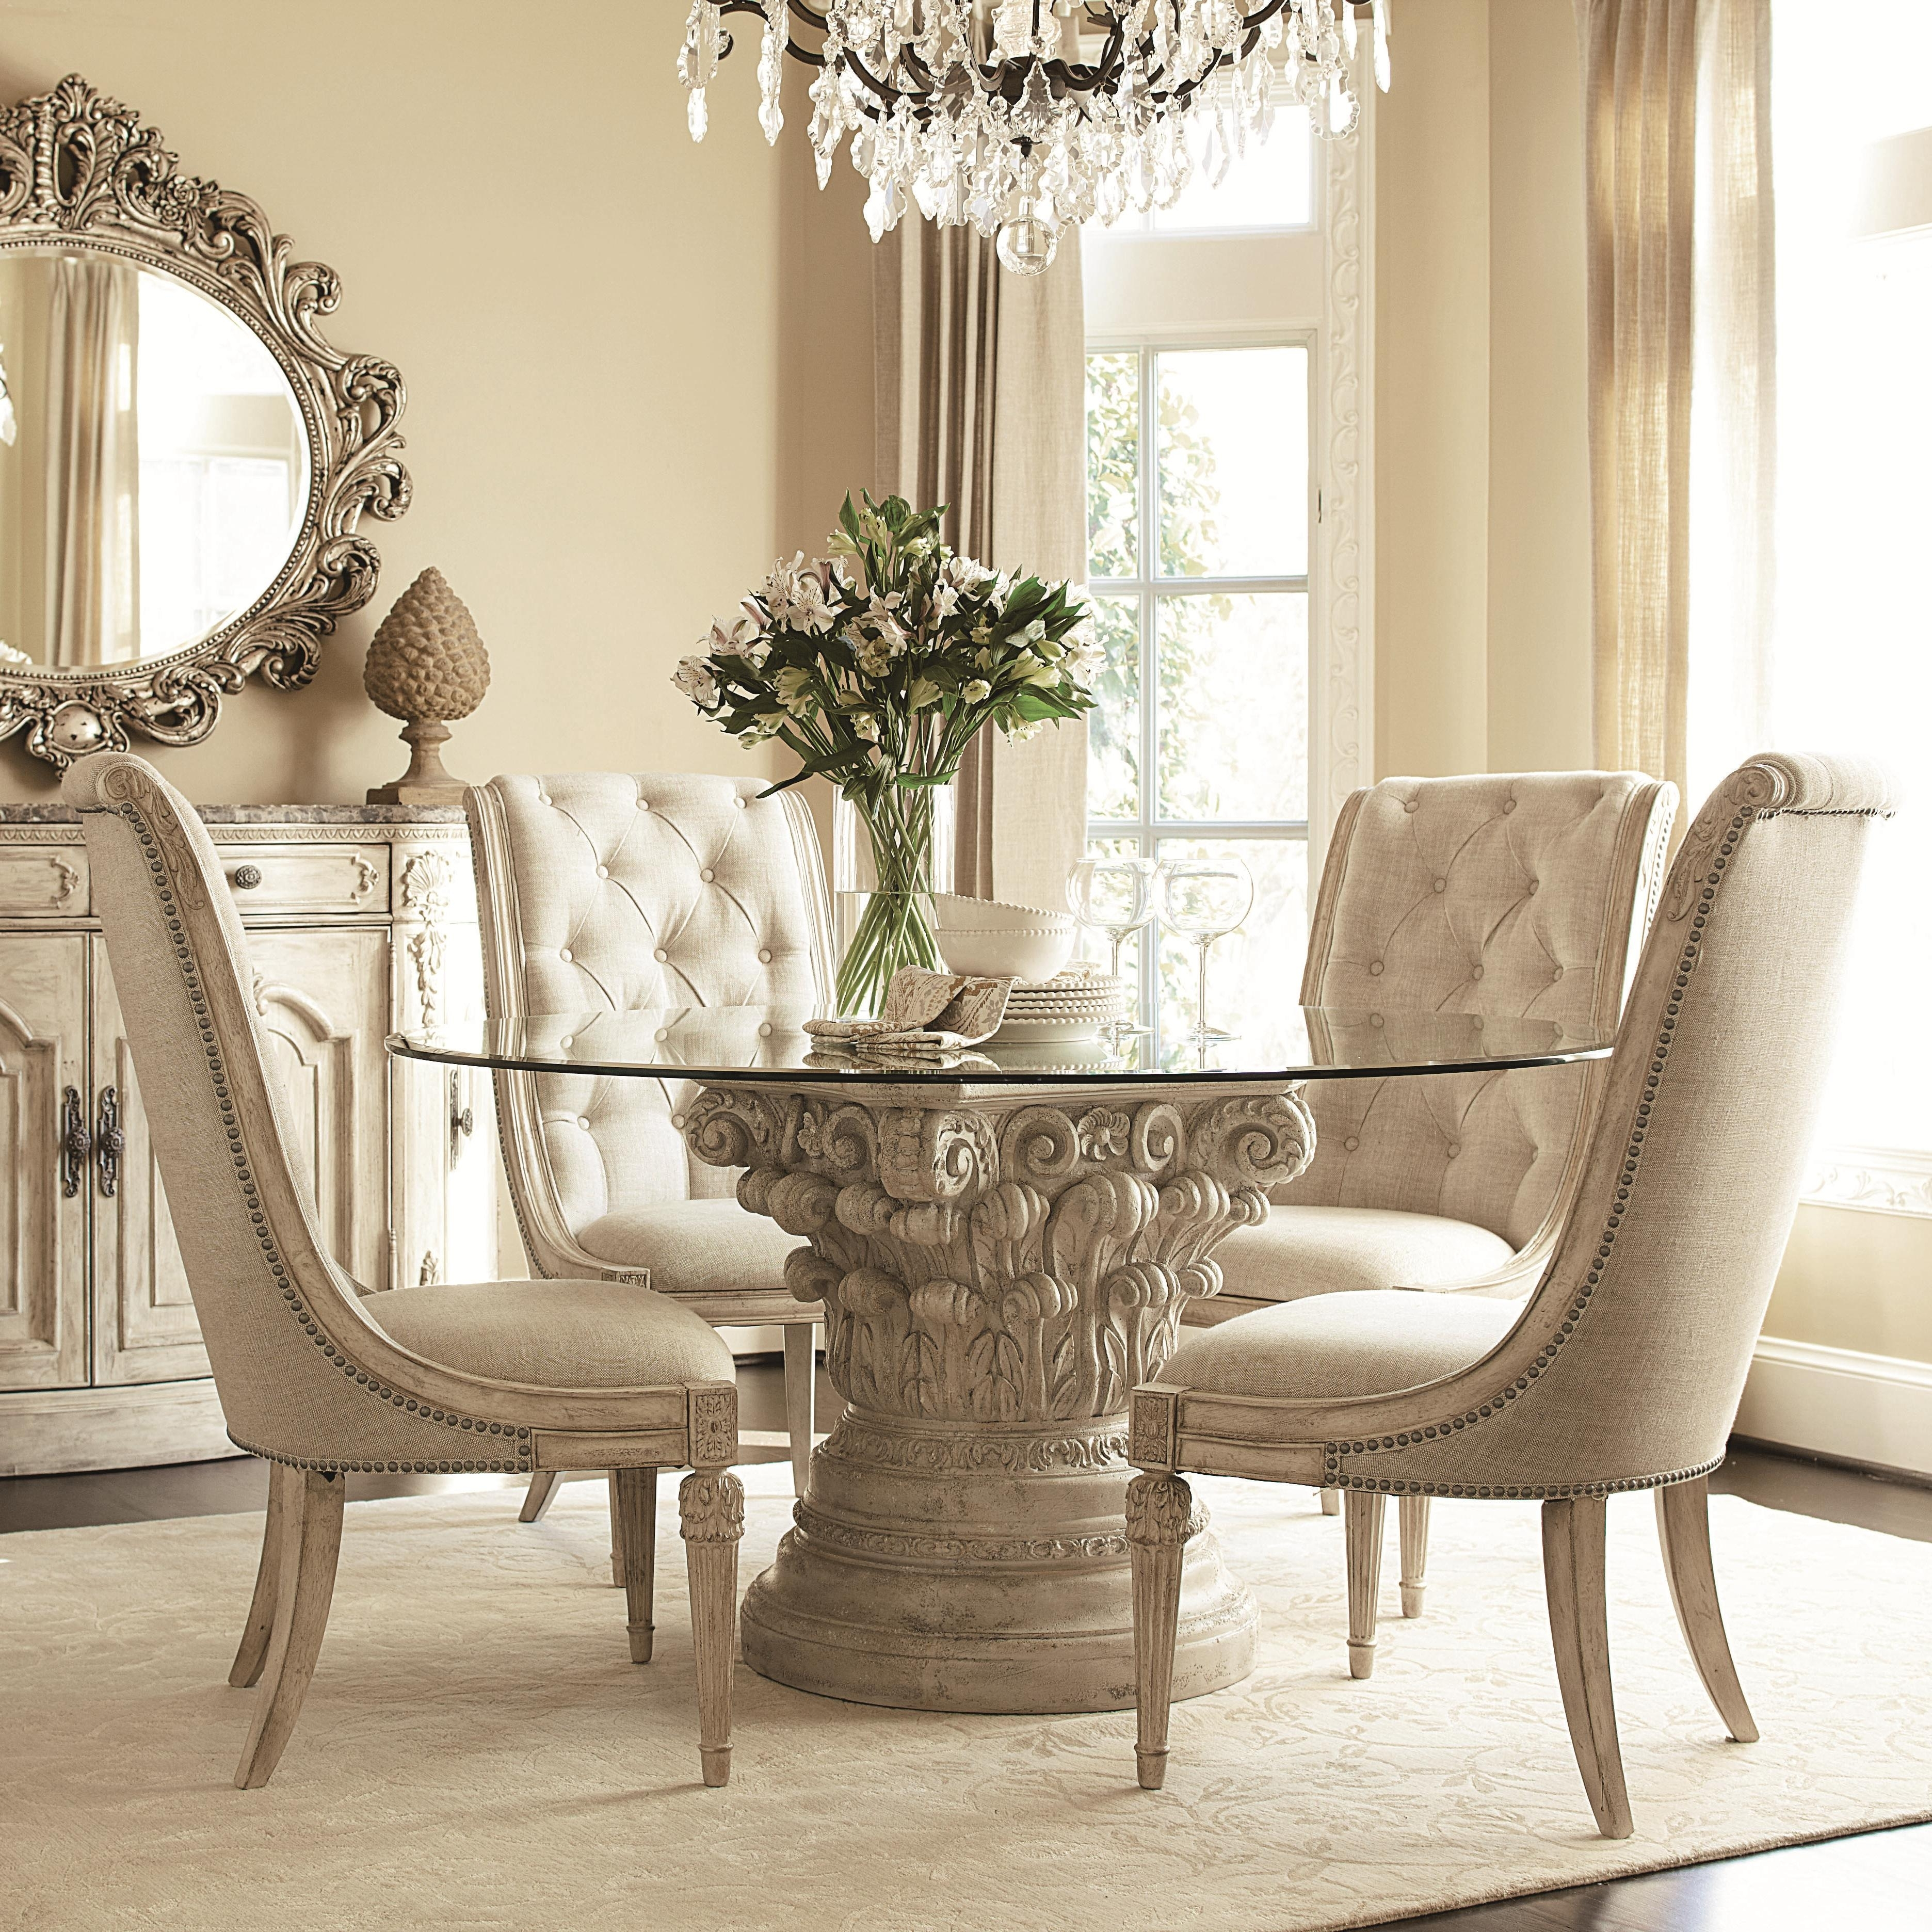 American Drew Jessica Mcclintock Home – The Boutique Collection 5 For Recent Caira Black 5 Piece Round Dining Sets With Diamond Back Side Chairs (View 9 of 20)